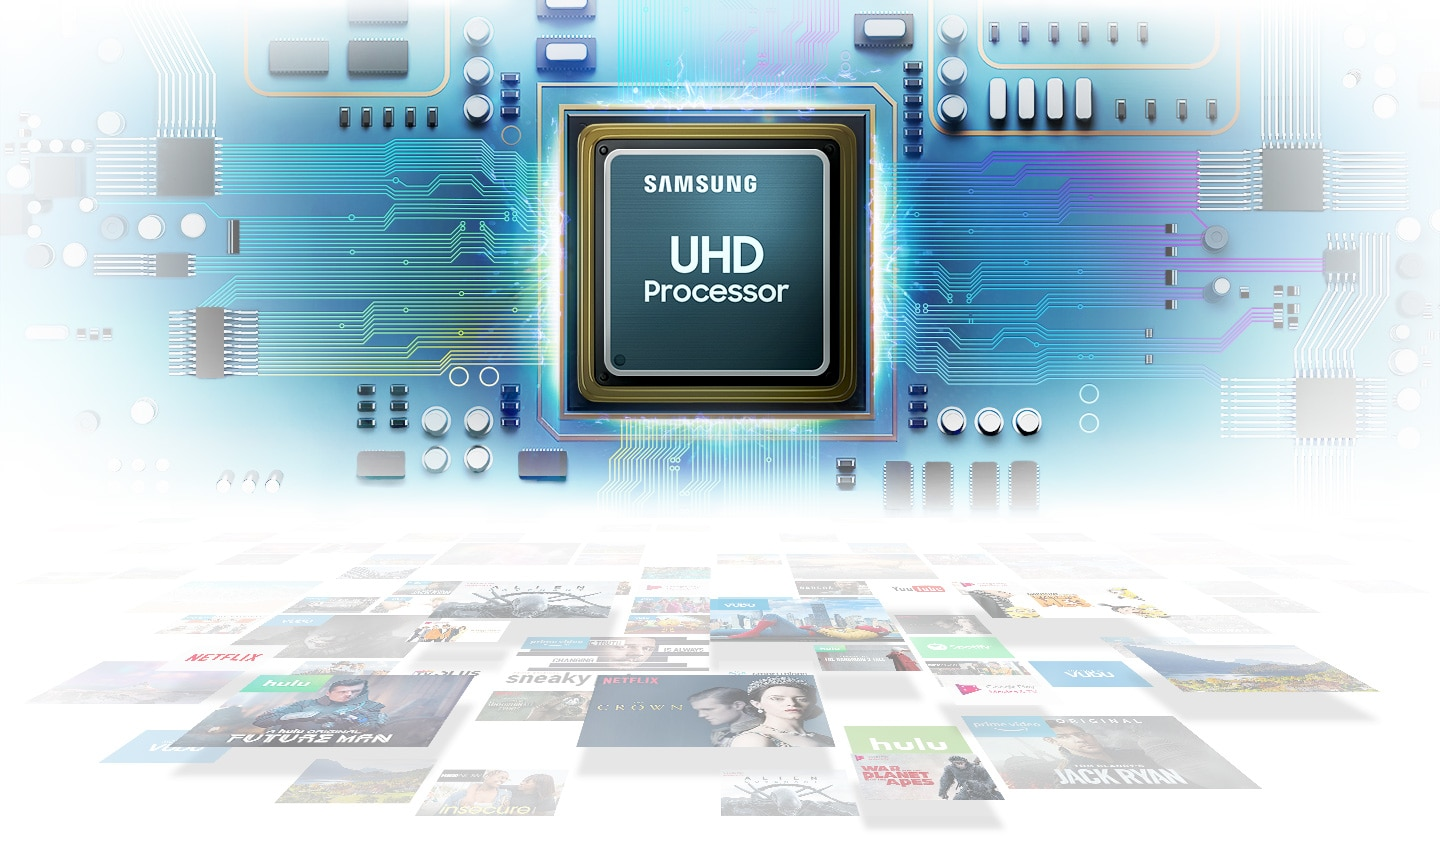 vn-feature-uhd-processor-powerful-picture-quality-150443623.jpg